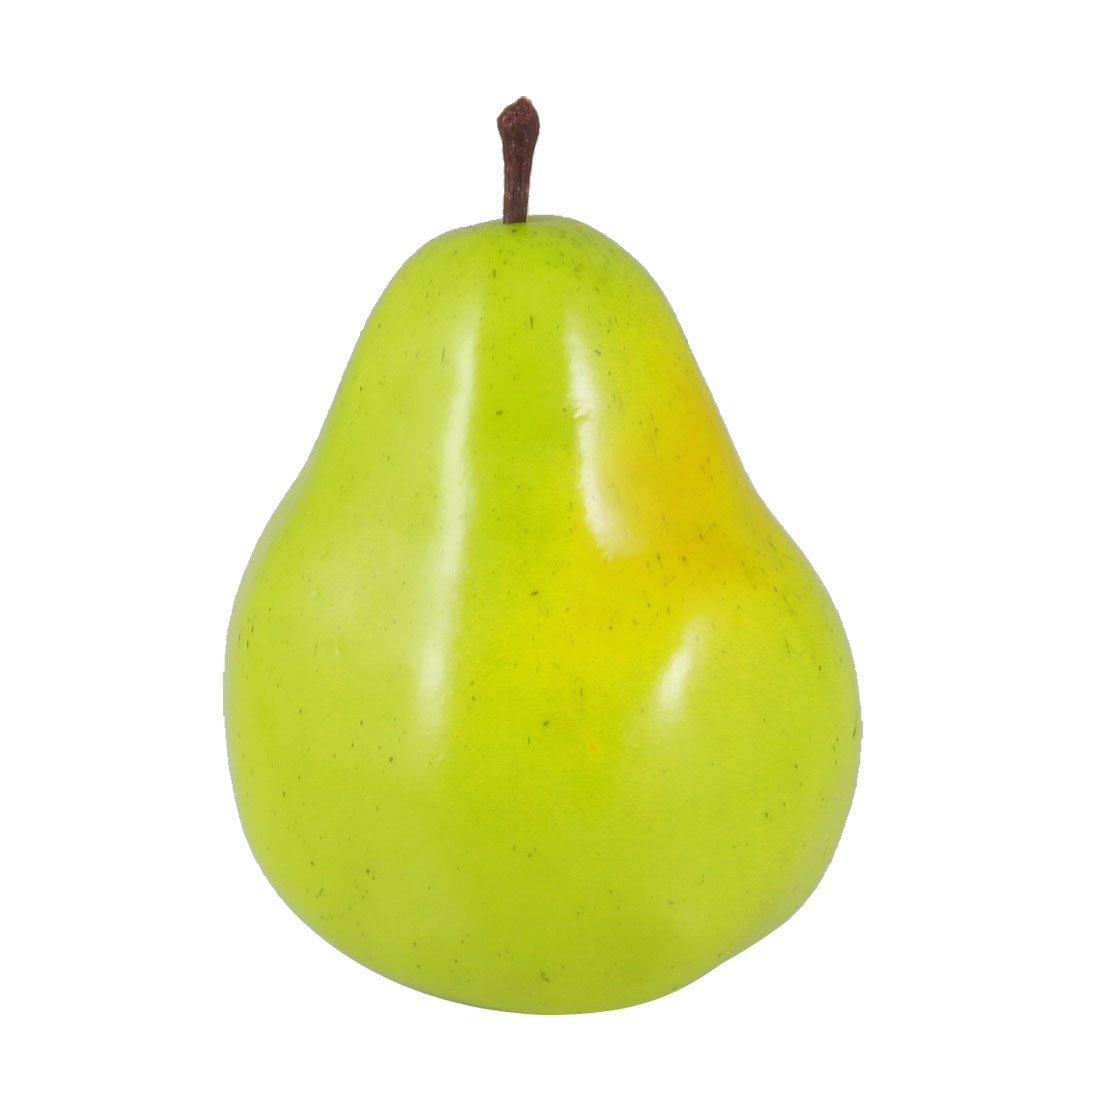 Home Cabinet Decor Simulation Foam Pear Fruit Green 11.5cm High